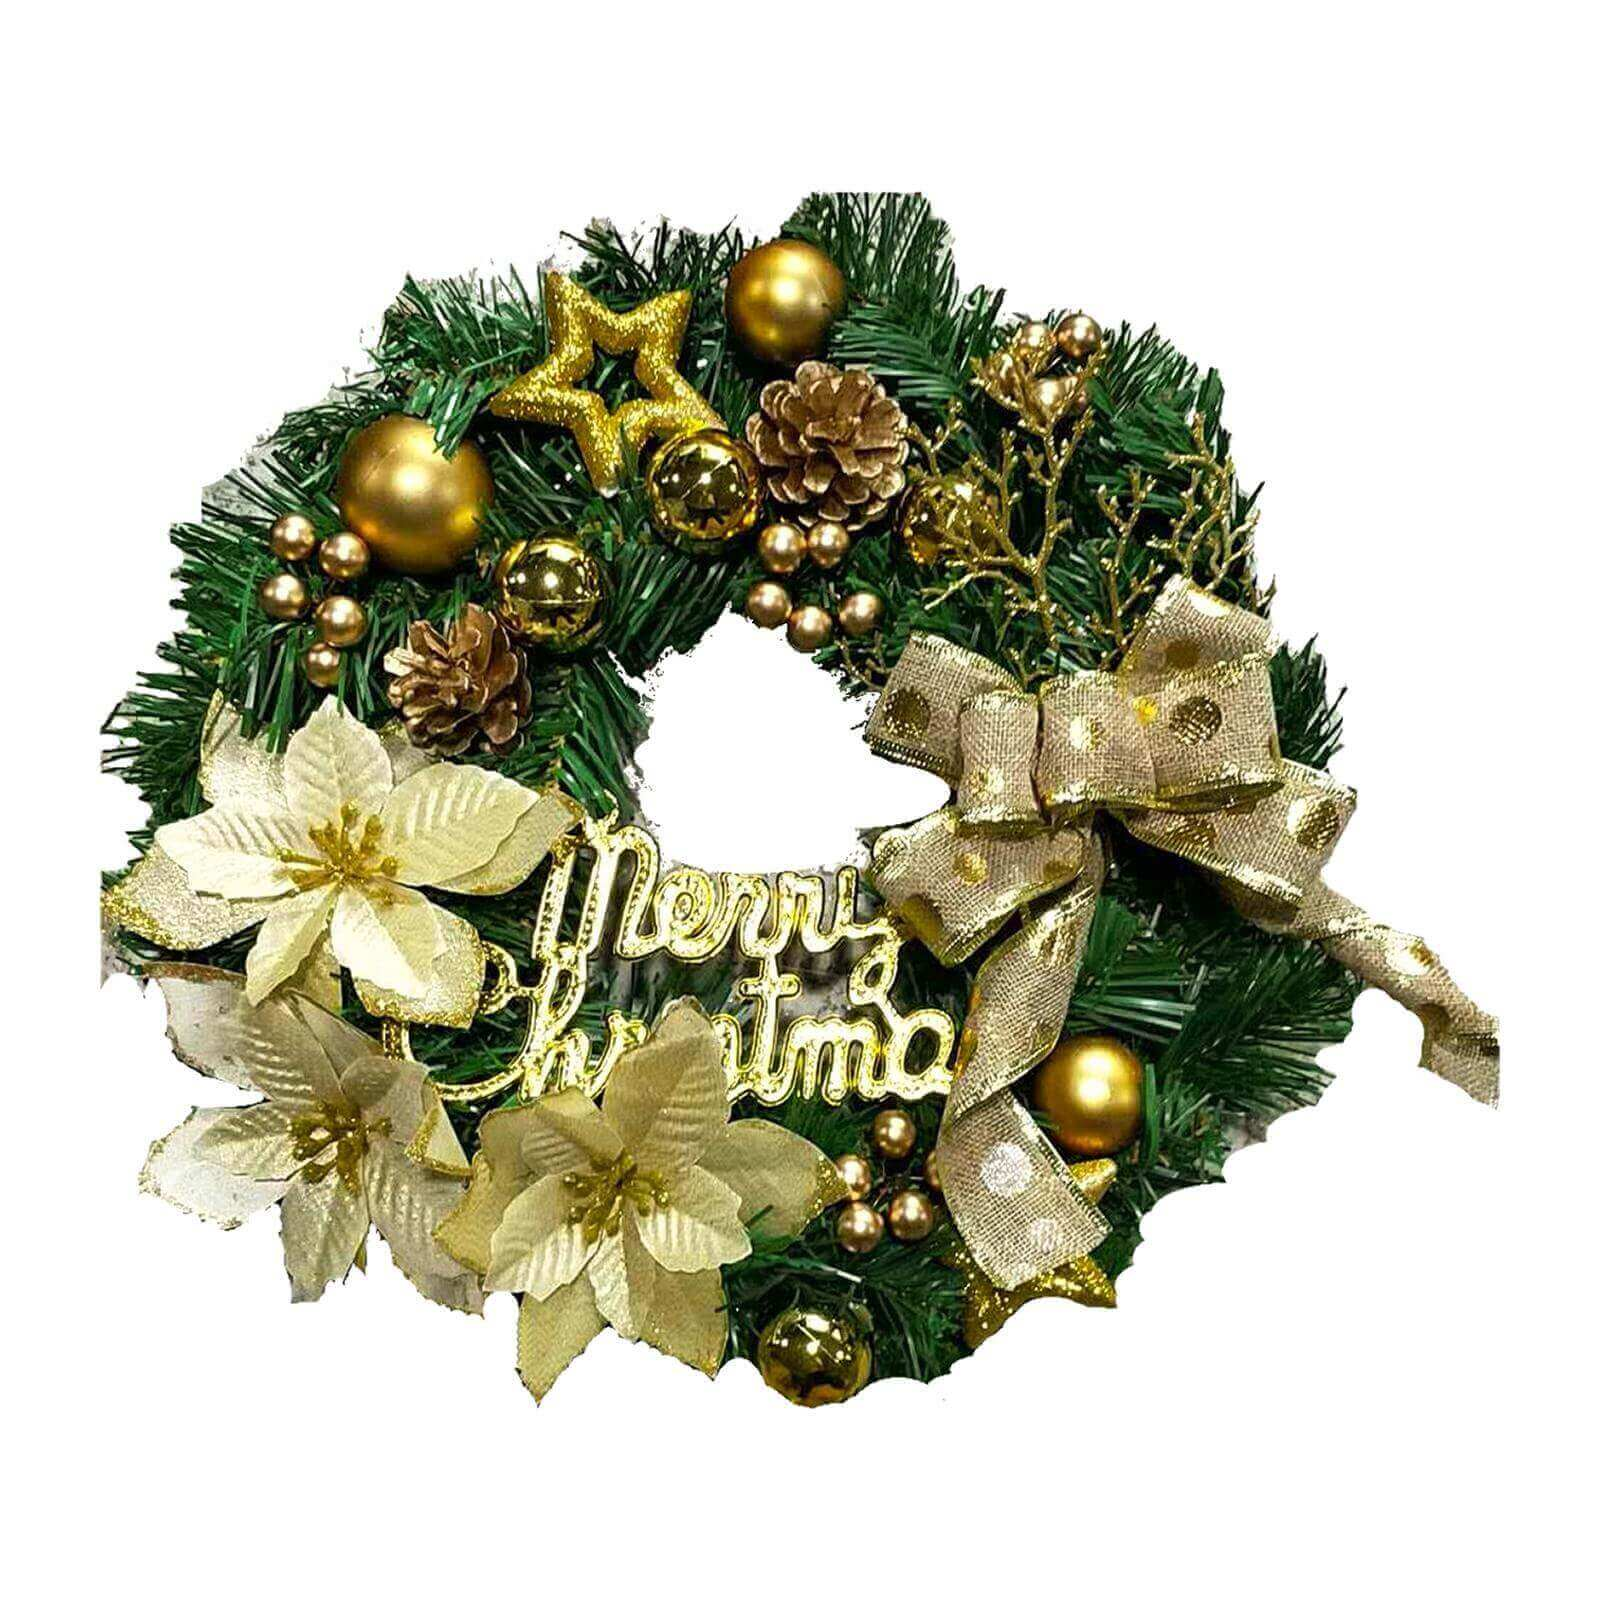 Christmas Giveaway Wreath.jpg